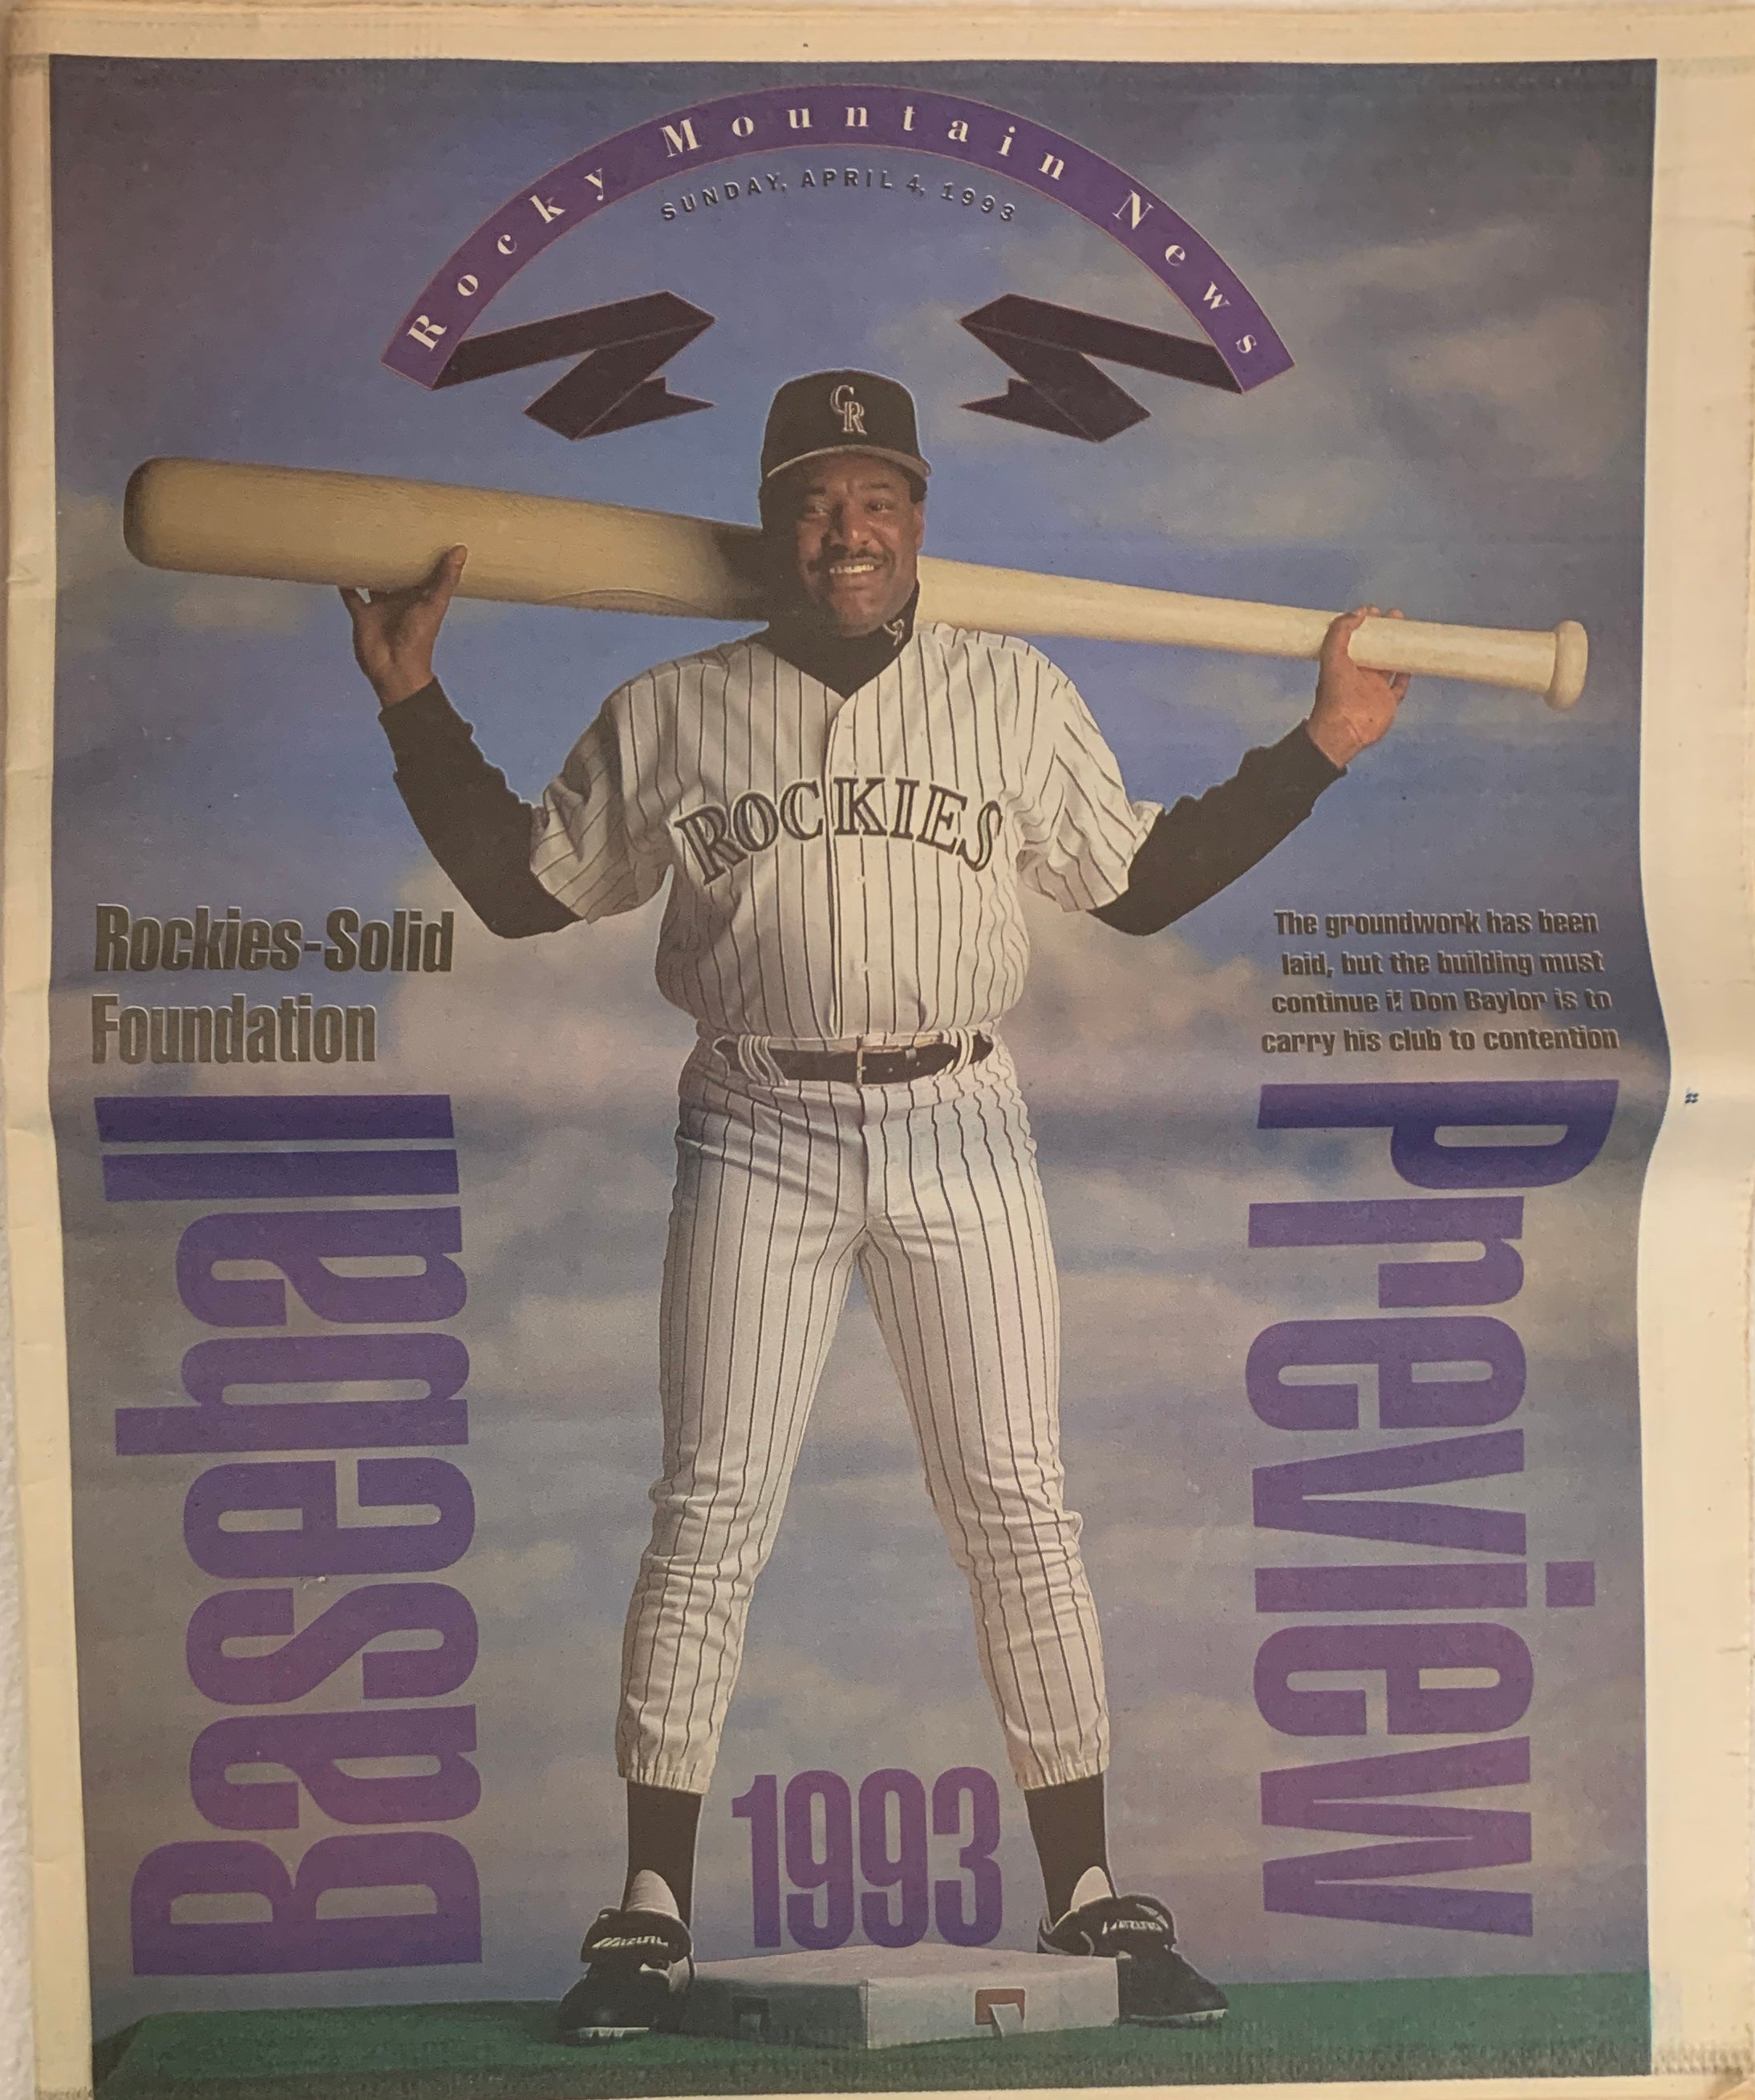 Rocky Mountain News of 1993 Colorado Rockies Featuring Don Baylor - Latitude Sports Marketing